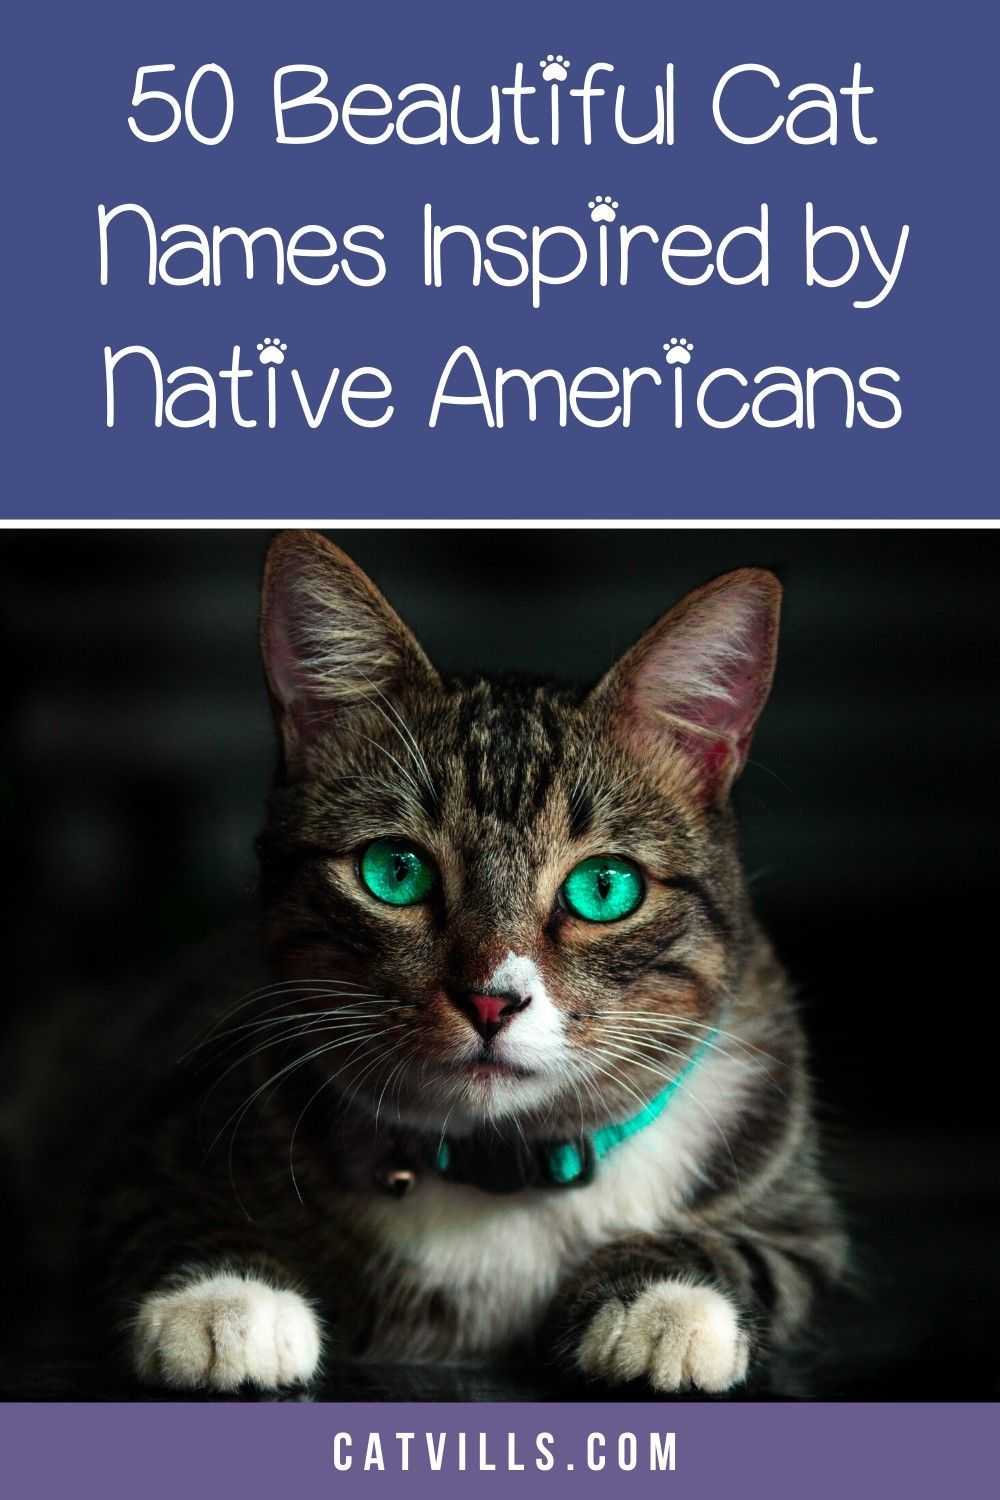 Looking for some meaningful Native American cat names to